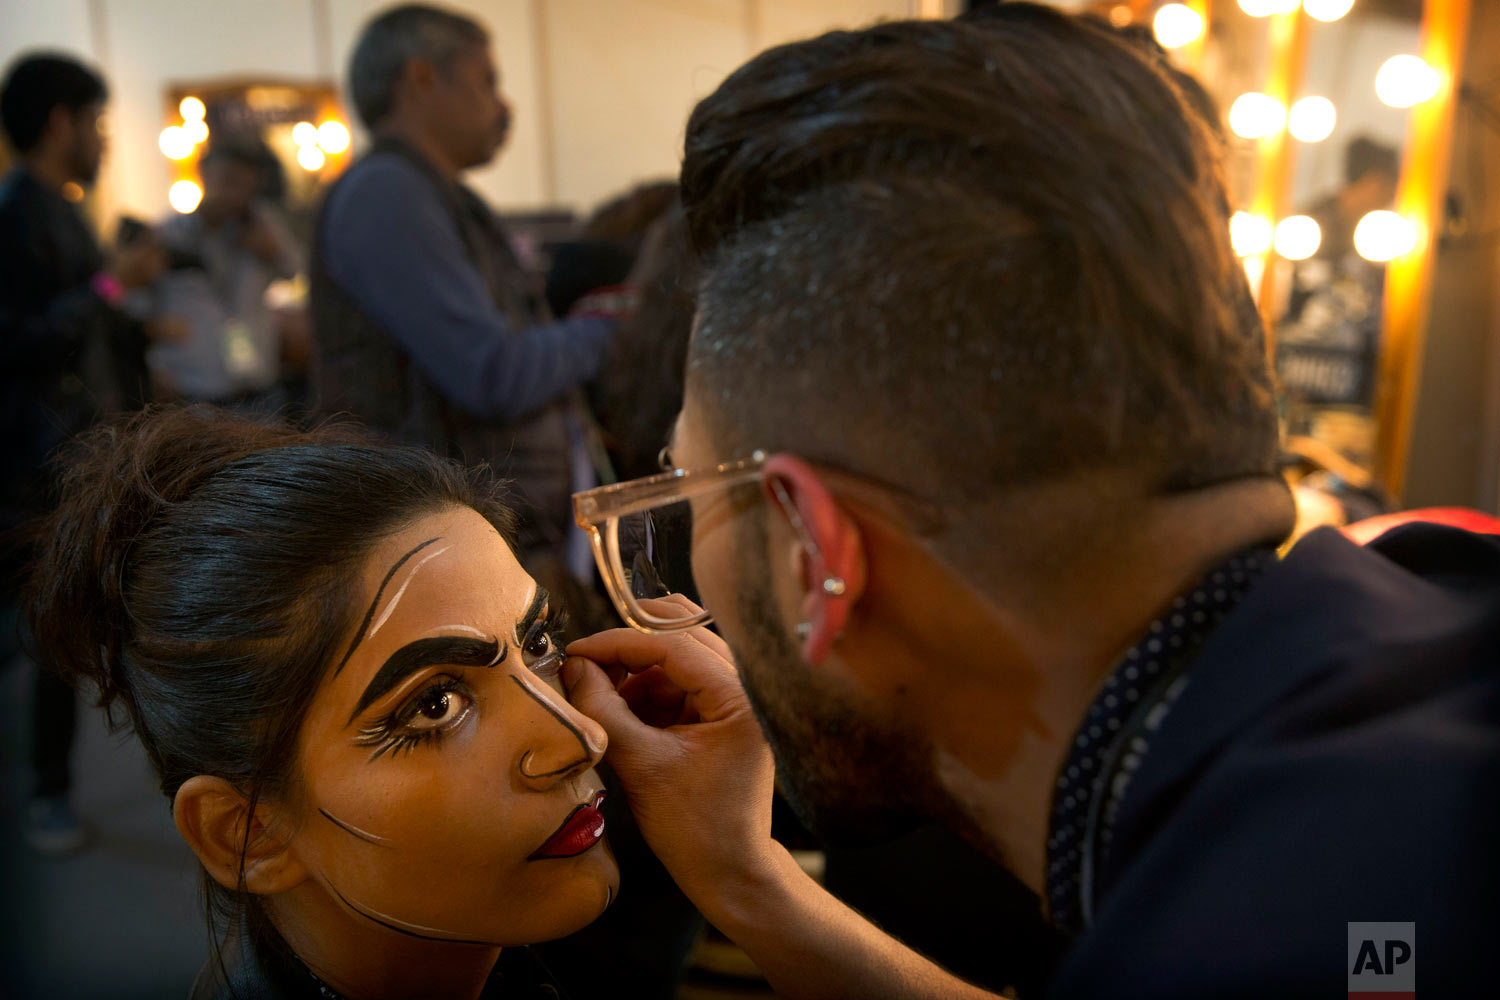 A makeup artist applies eyeliner to a model before a show at the Lotus Makeup India Fashion Week, on Thursday, March 14, 2019, in New Delhi, India. (AP Photo/Manish Swarup)